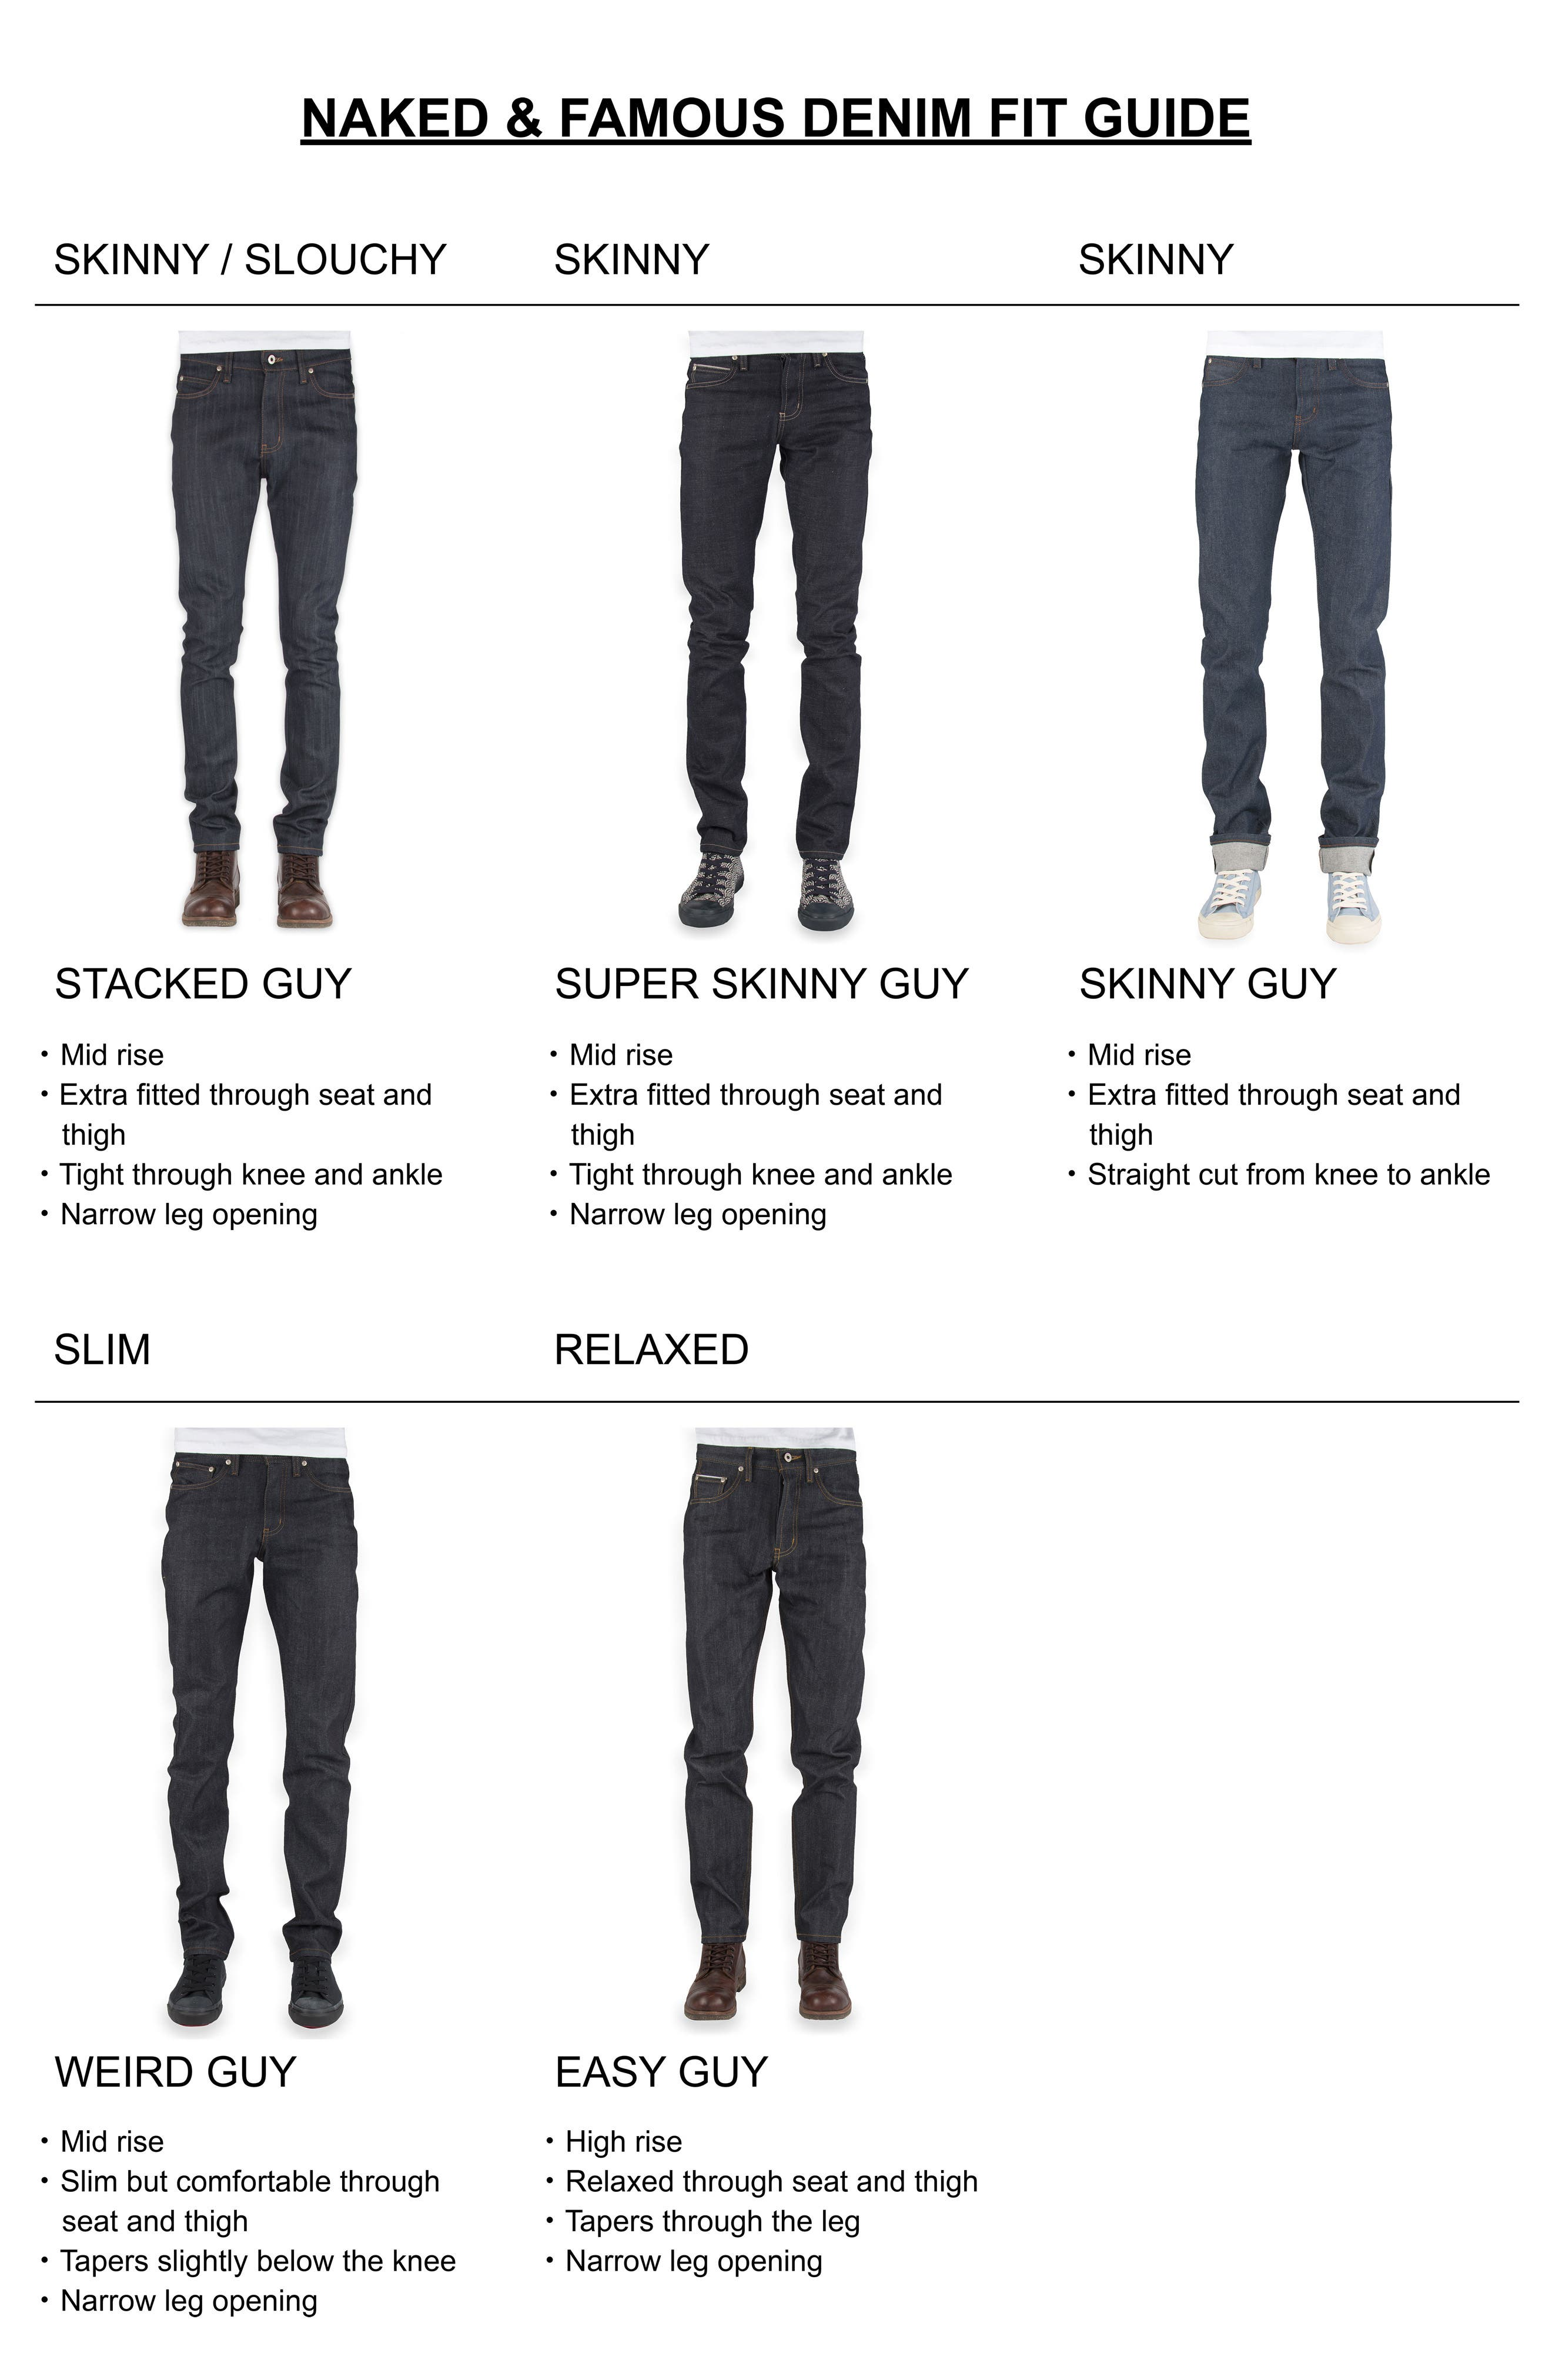 Easy Guy 11 oz. Stretch Selvedge Skinny Fit Jeans,                             Alternate thumbnail 6, color,                             Indigo